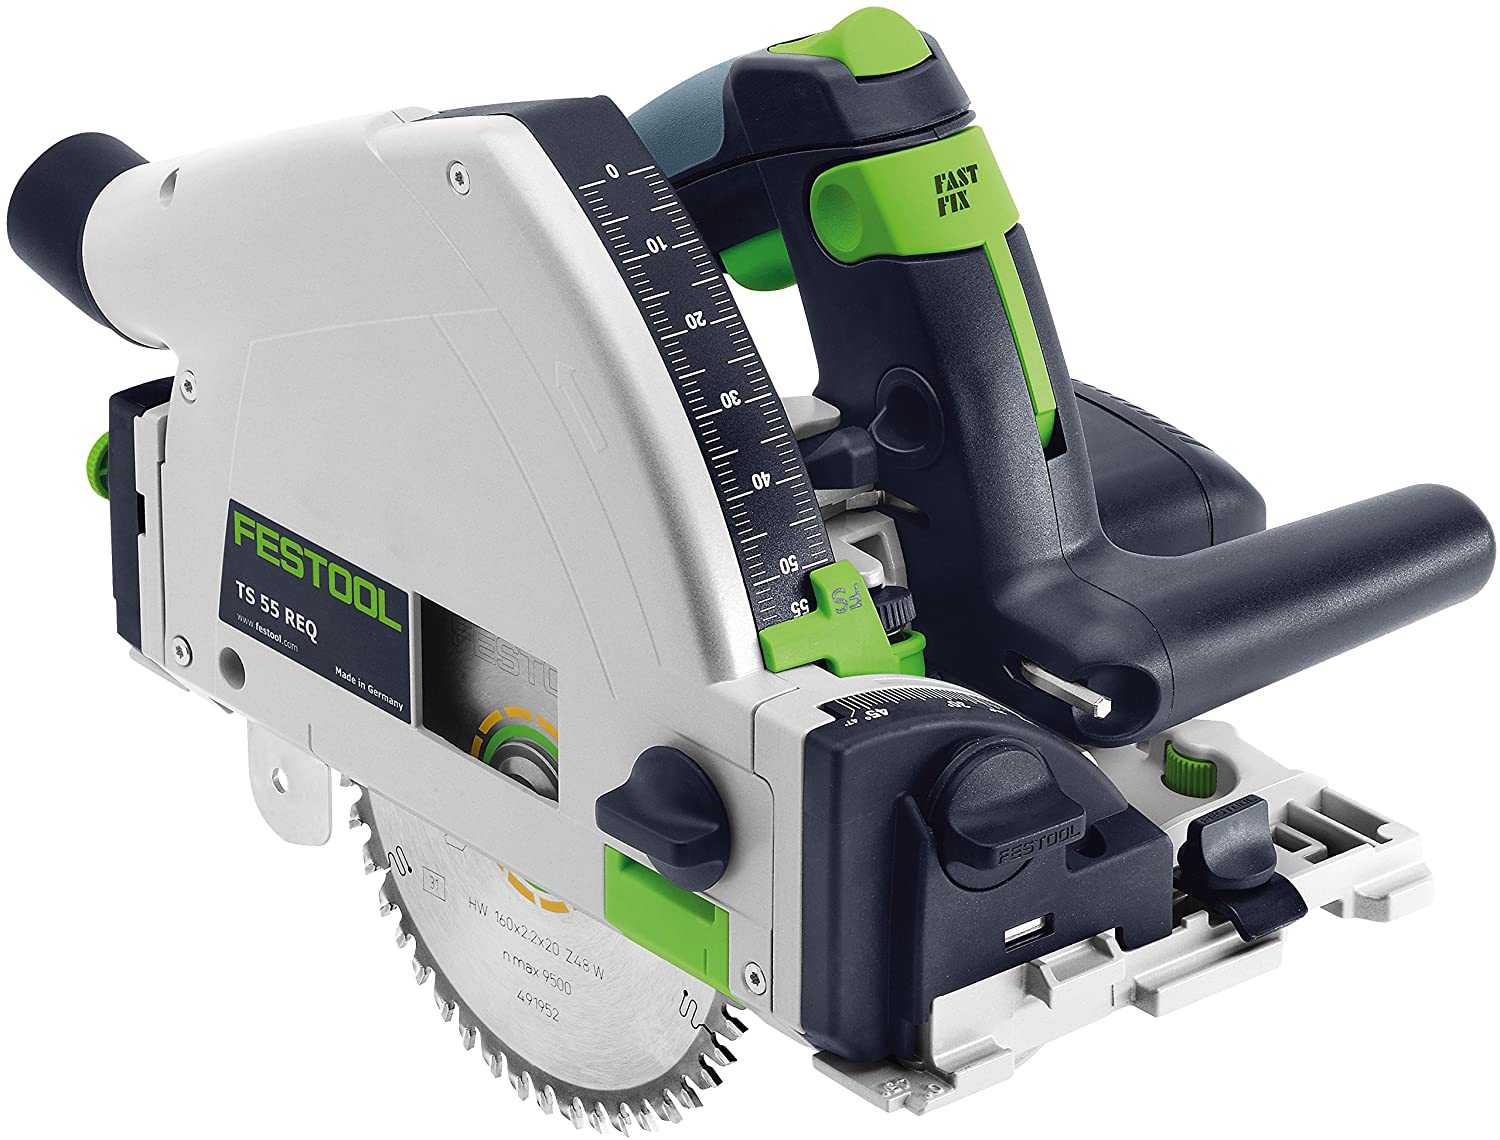 product image of Festool TS 55